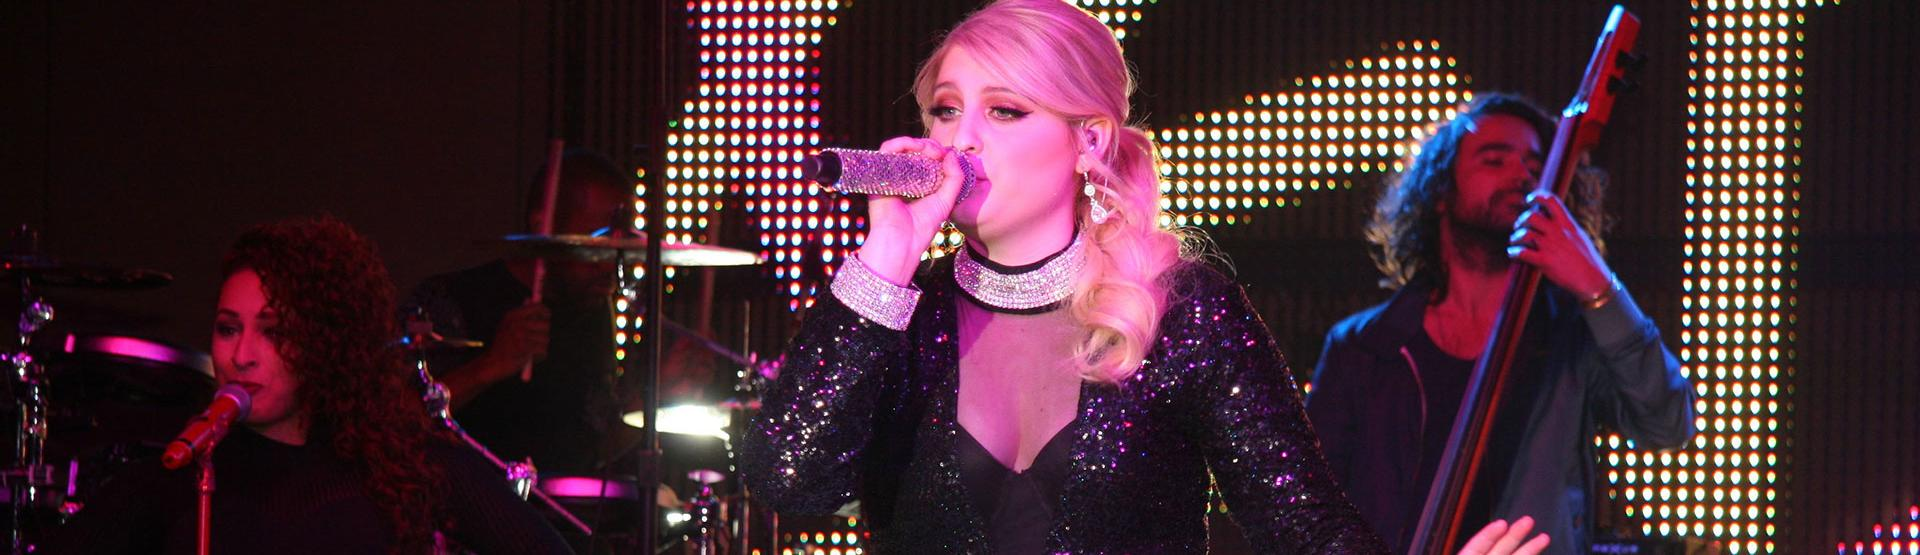 Meghan Trainor at The Dinah. Photo credit: Gay Desert Guide/Steven Tassopoulos